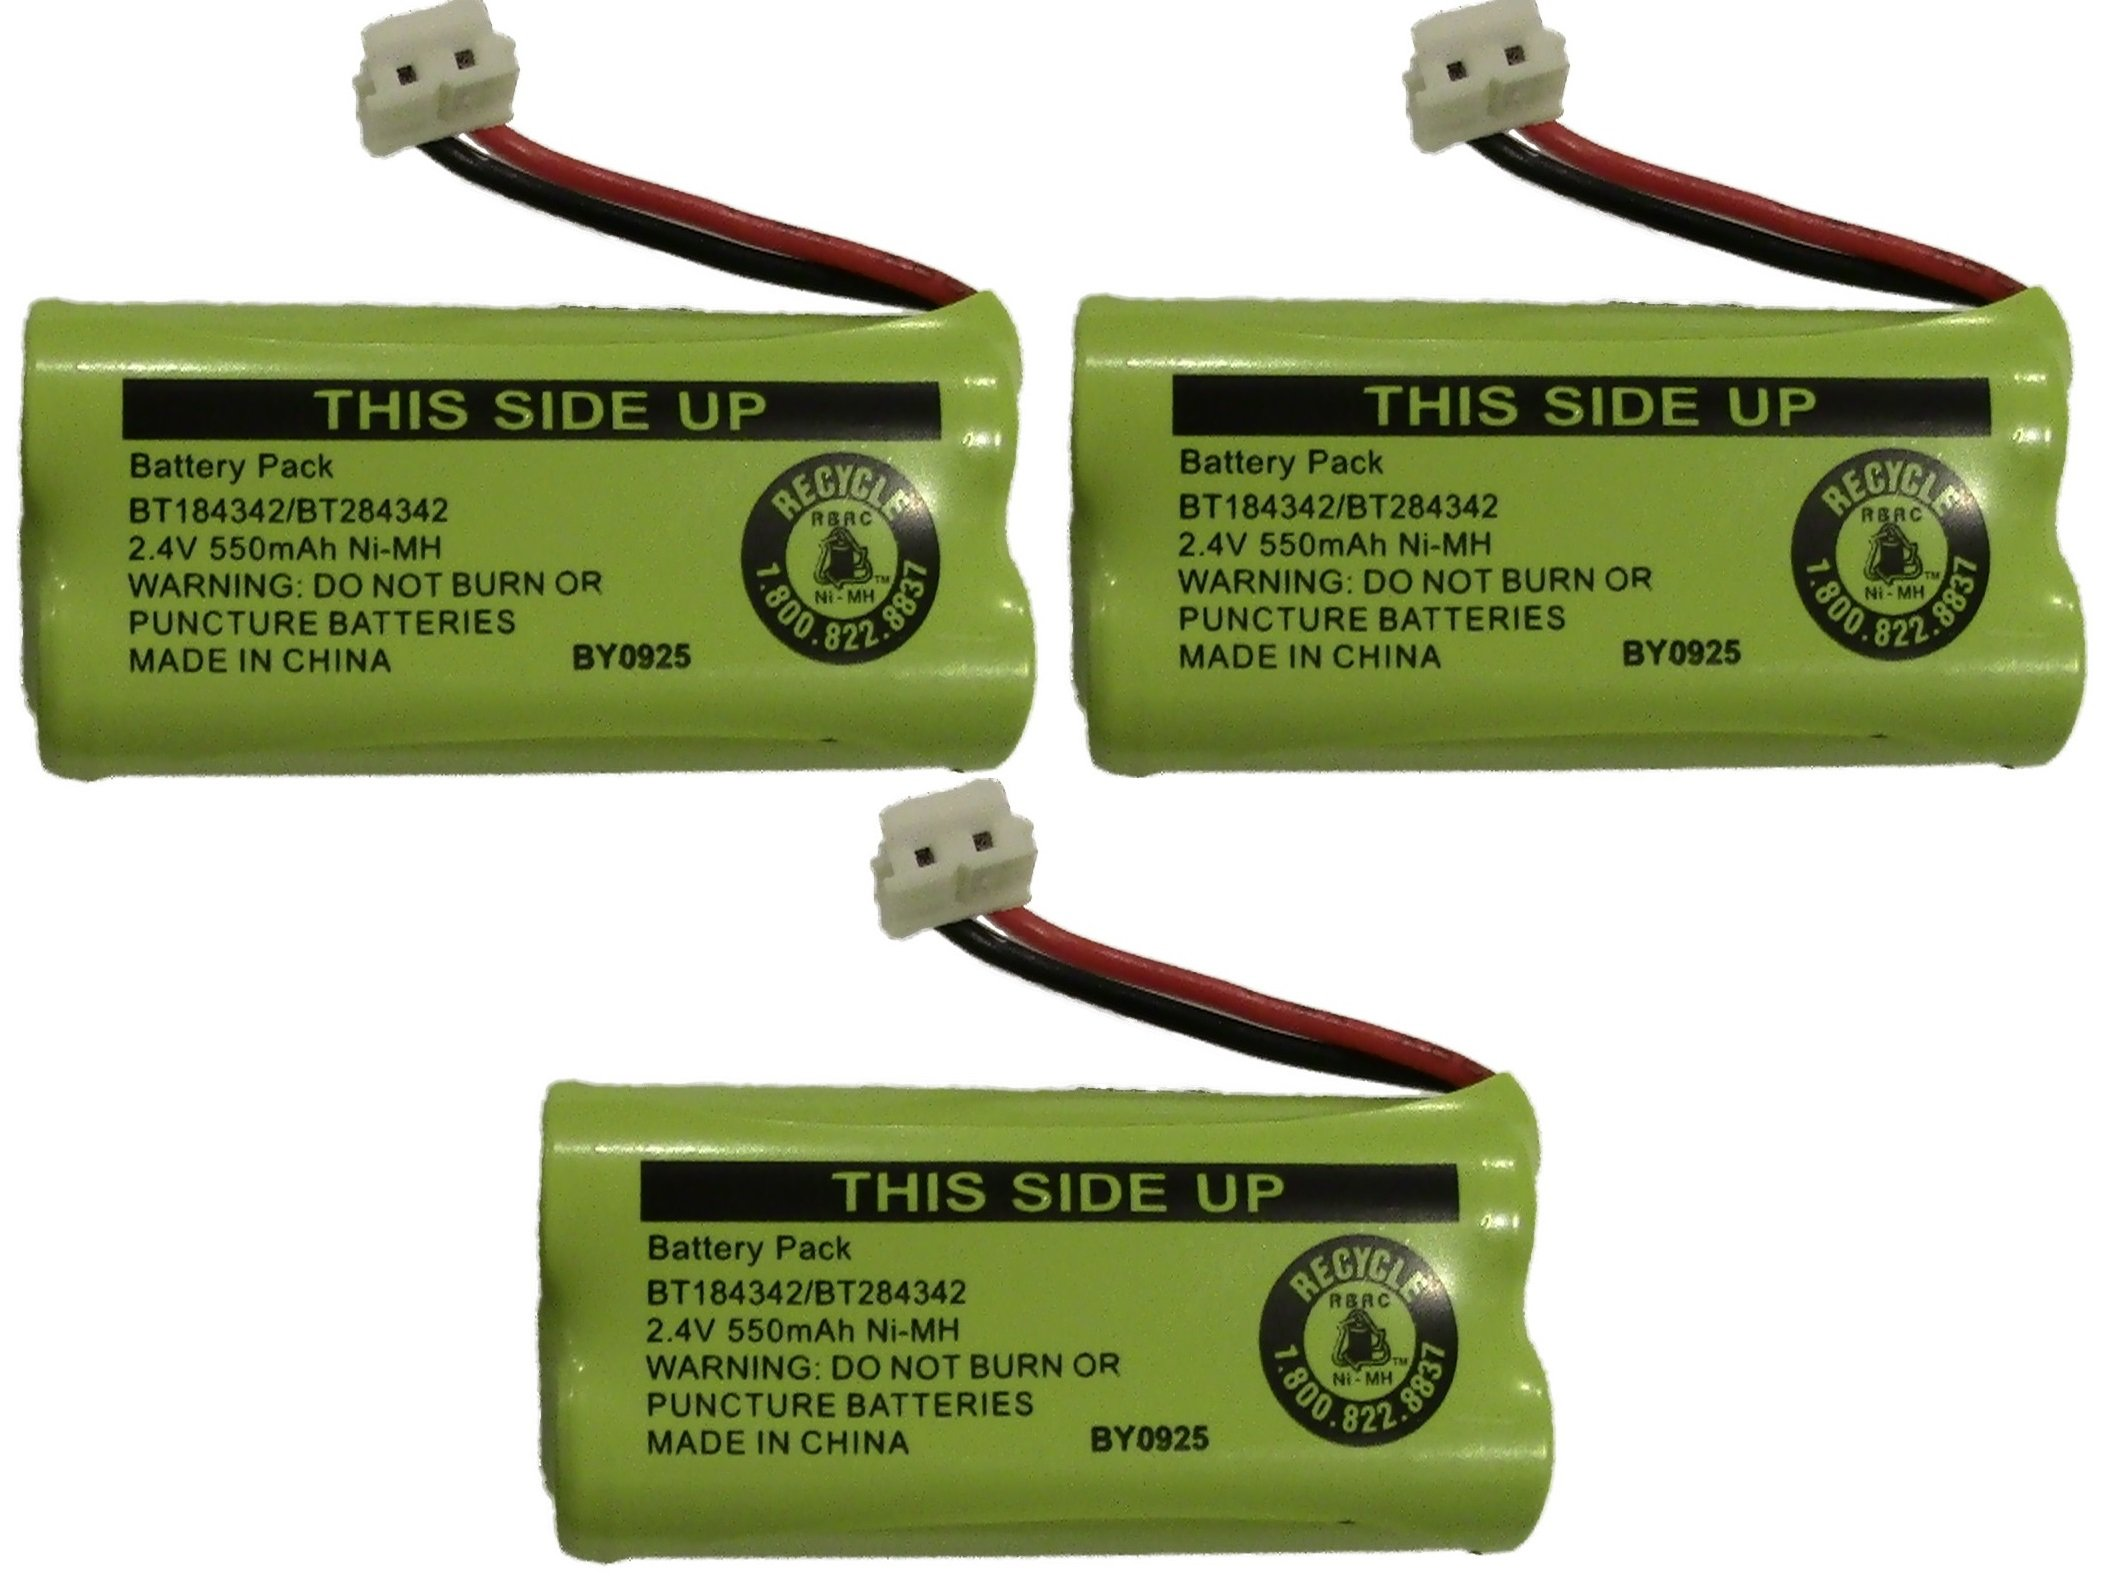 JustGreatDealz Battery BT184342 / BT284342 for AT&T Vtech GE RCA and Clarity Phones 2.4V 550mAh Ni-MH (3-Pack)